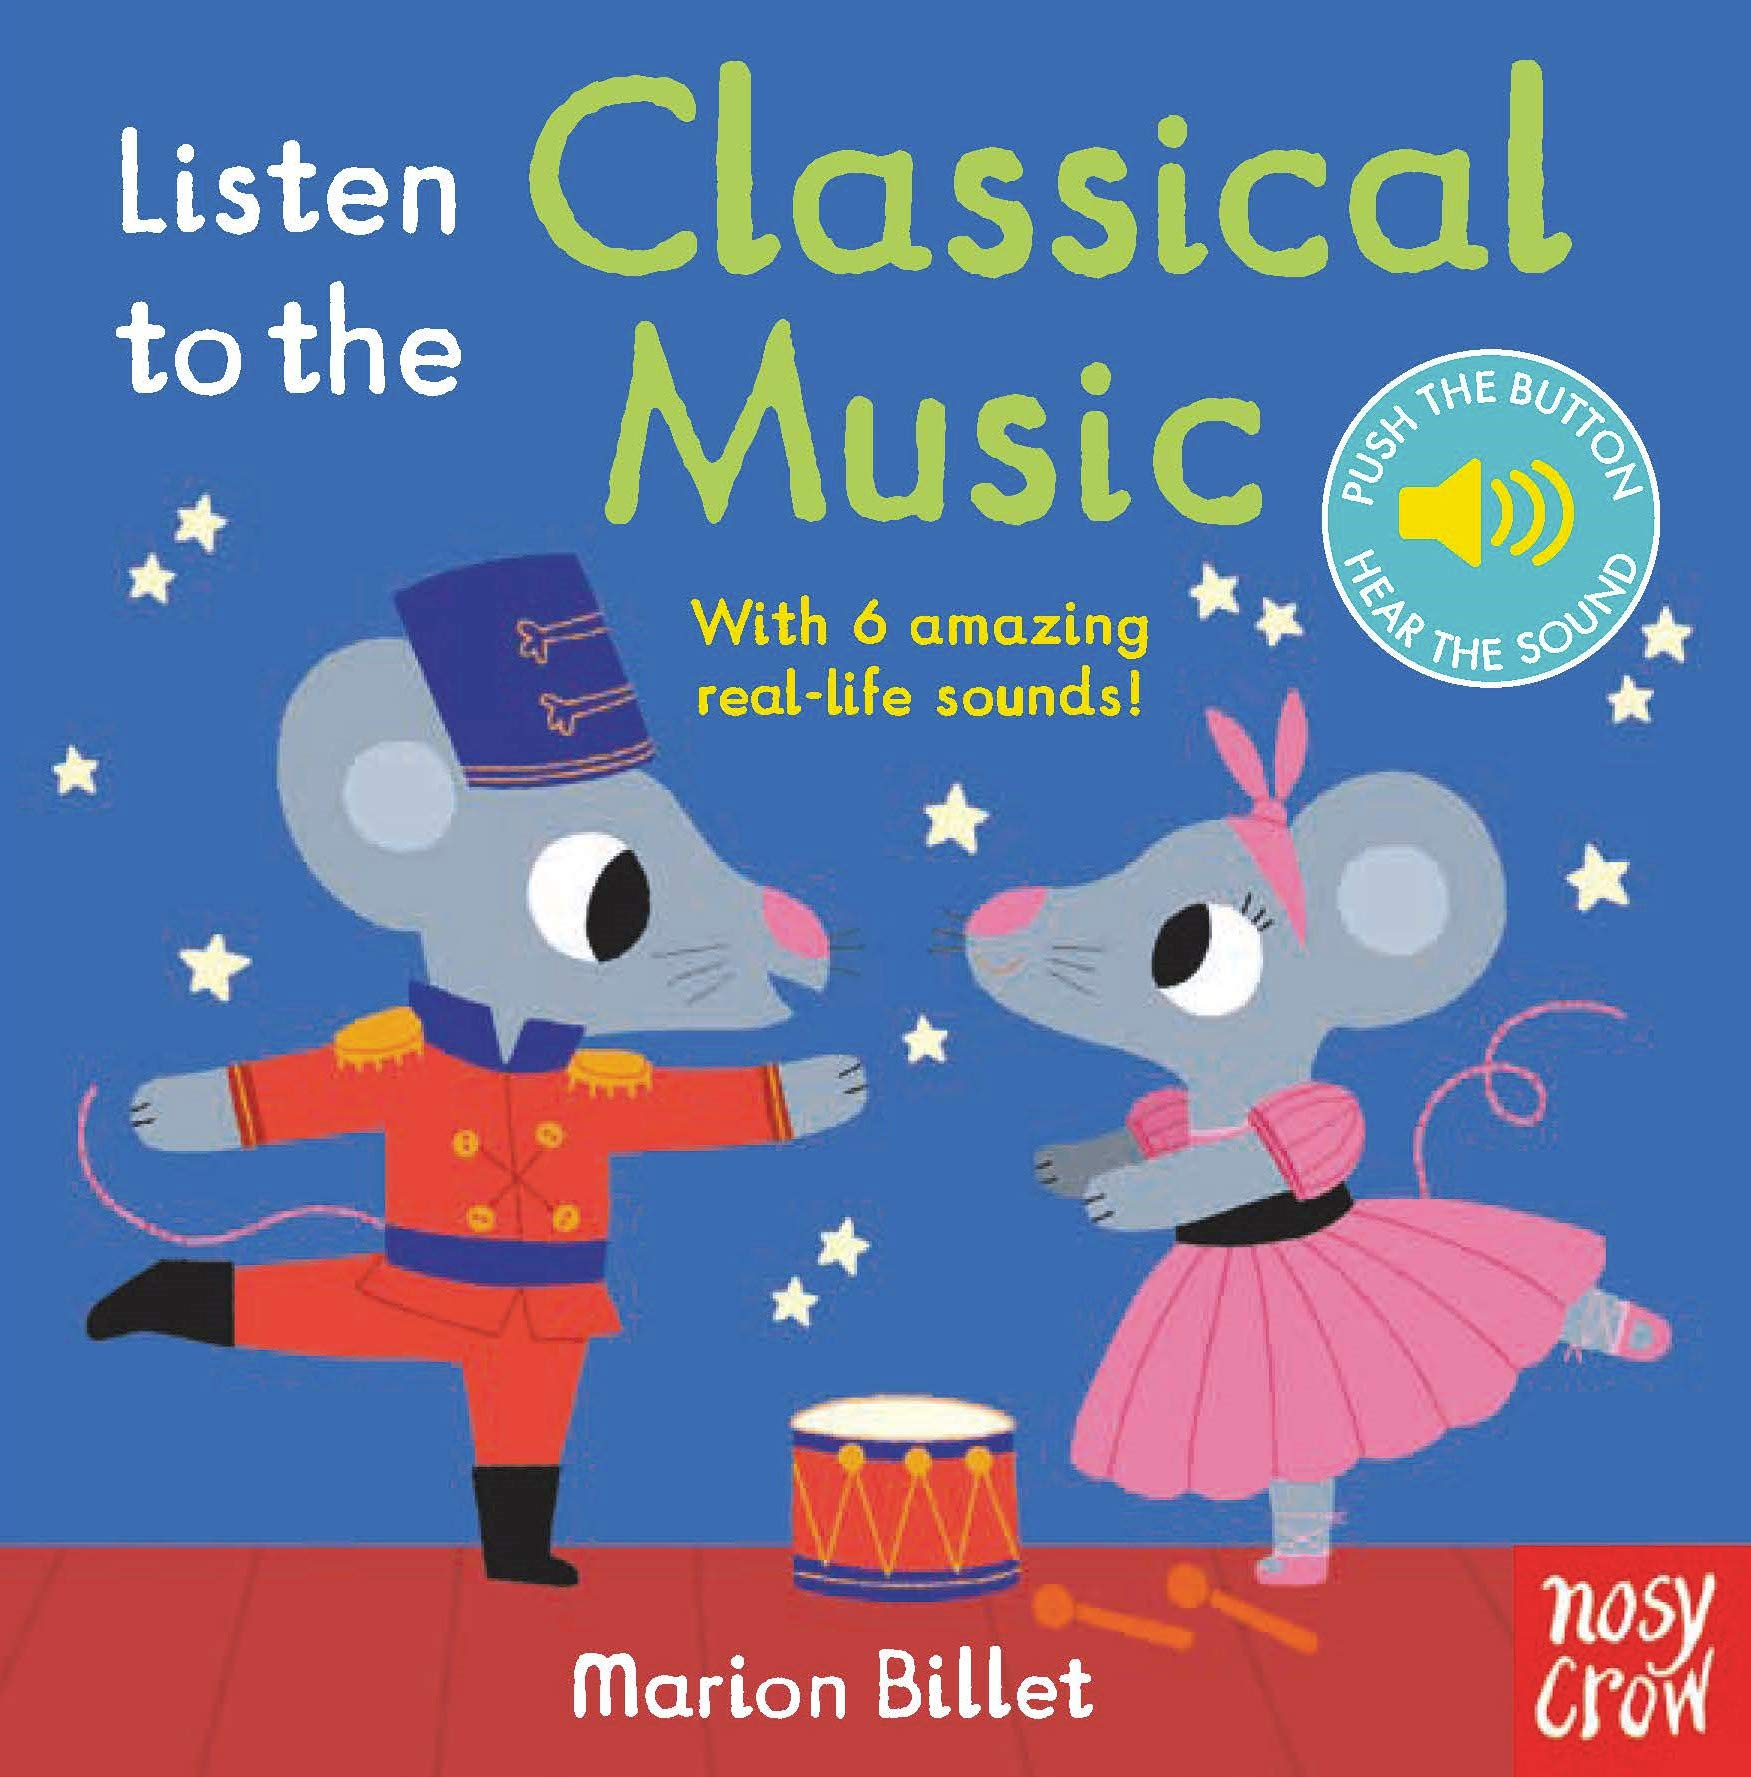 (Enora) Listen to the Classical Music